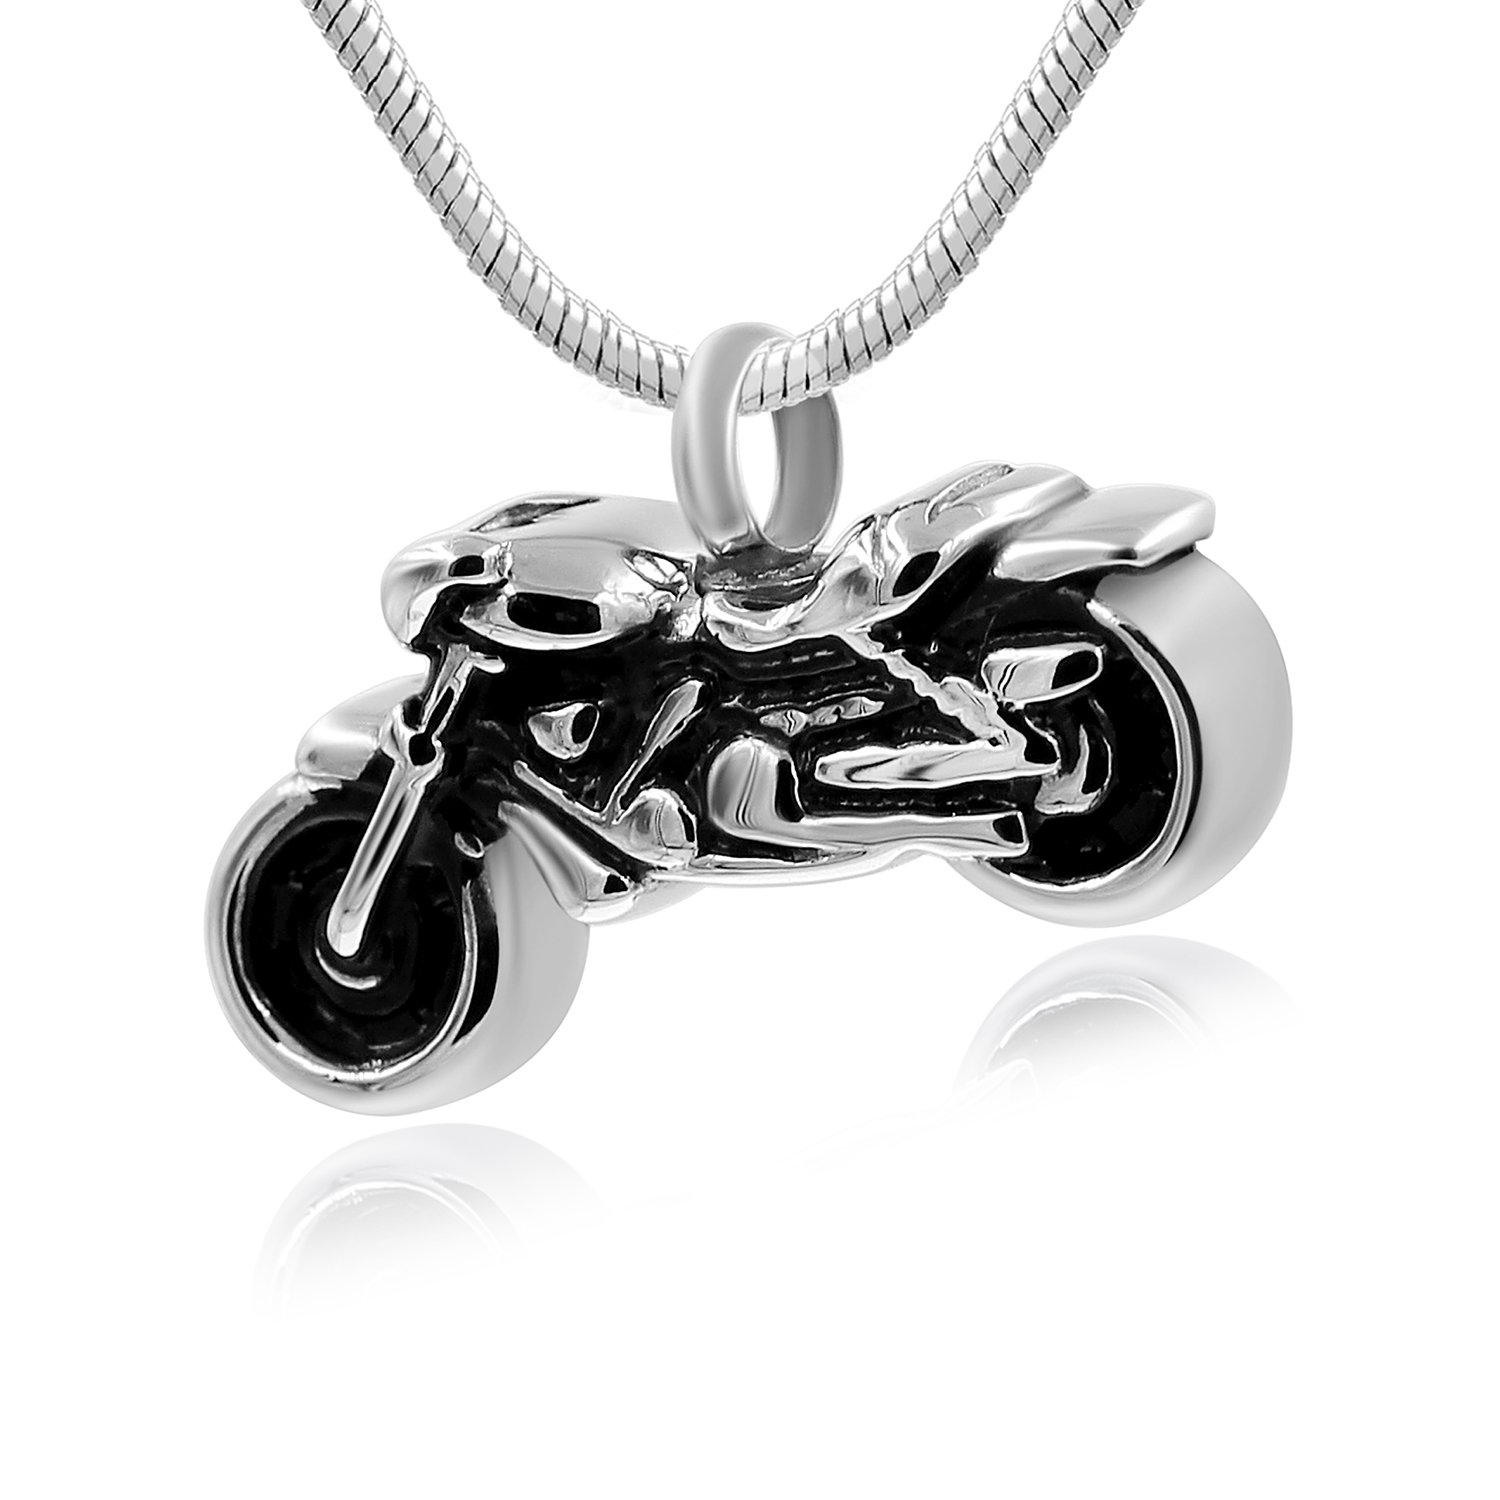 Hufan Motorcyle Cremation Jewelry for Ashes with Funnel and Chain by Hufan (Image #1)